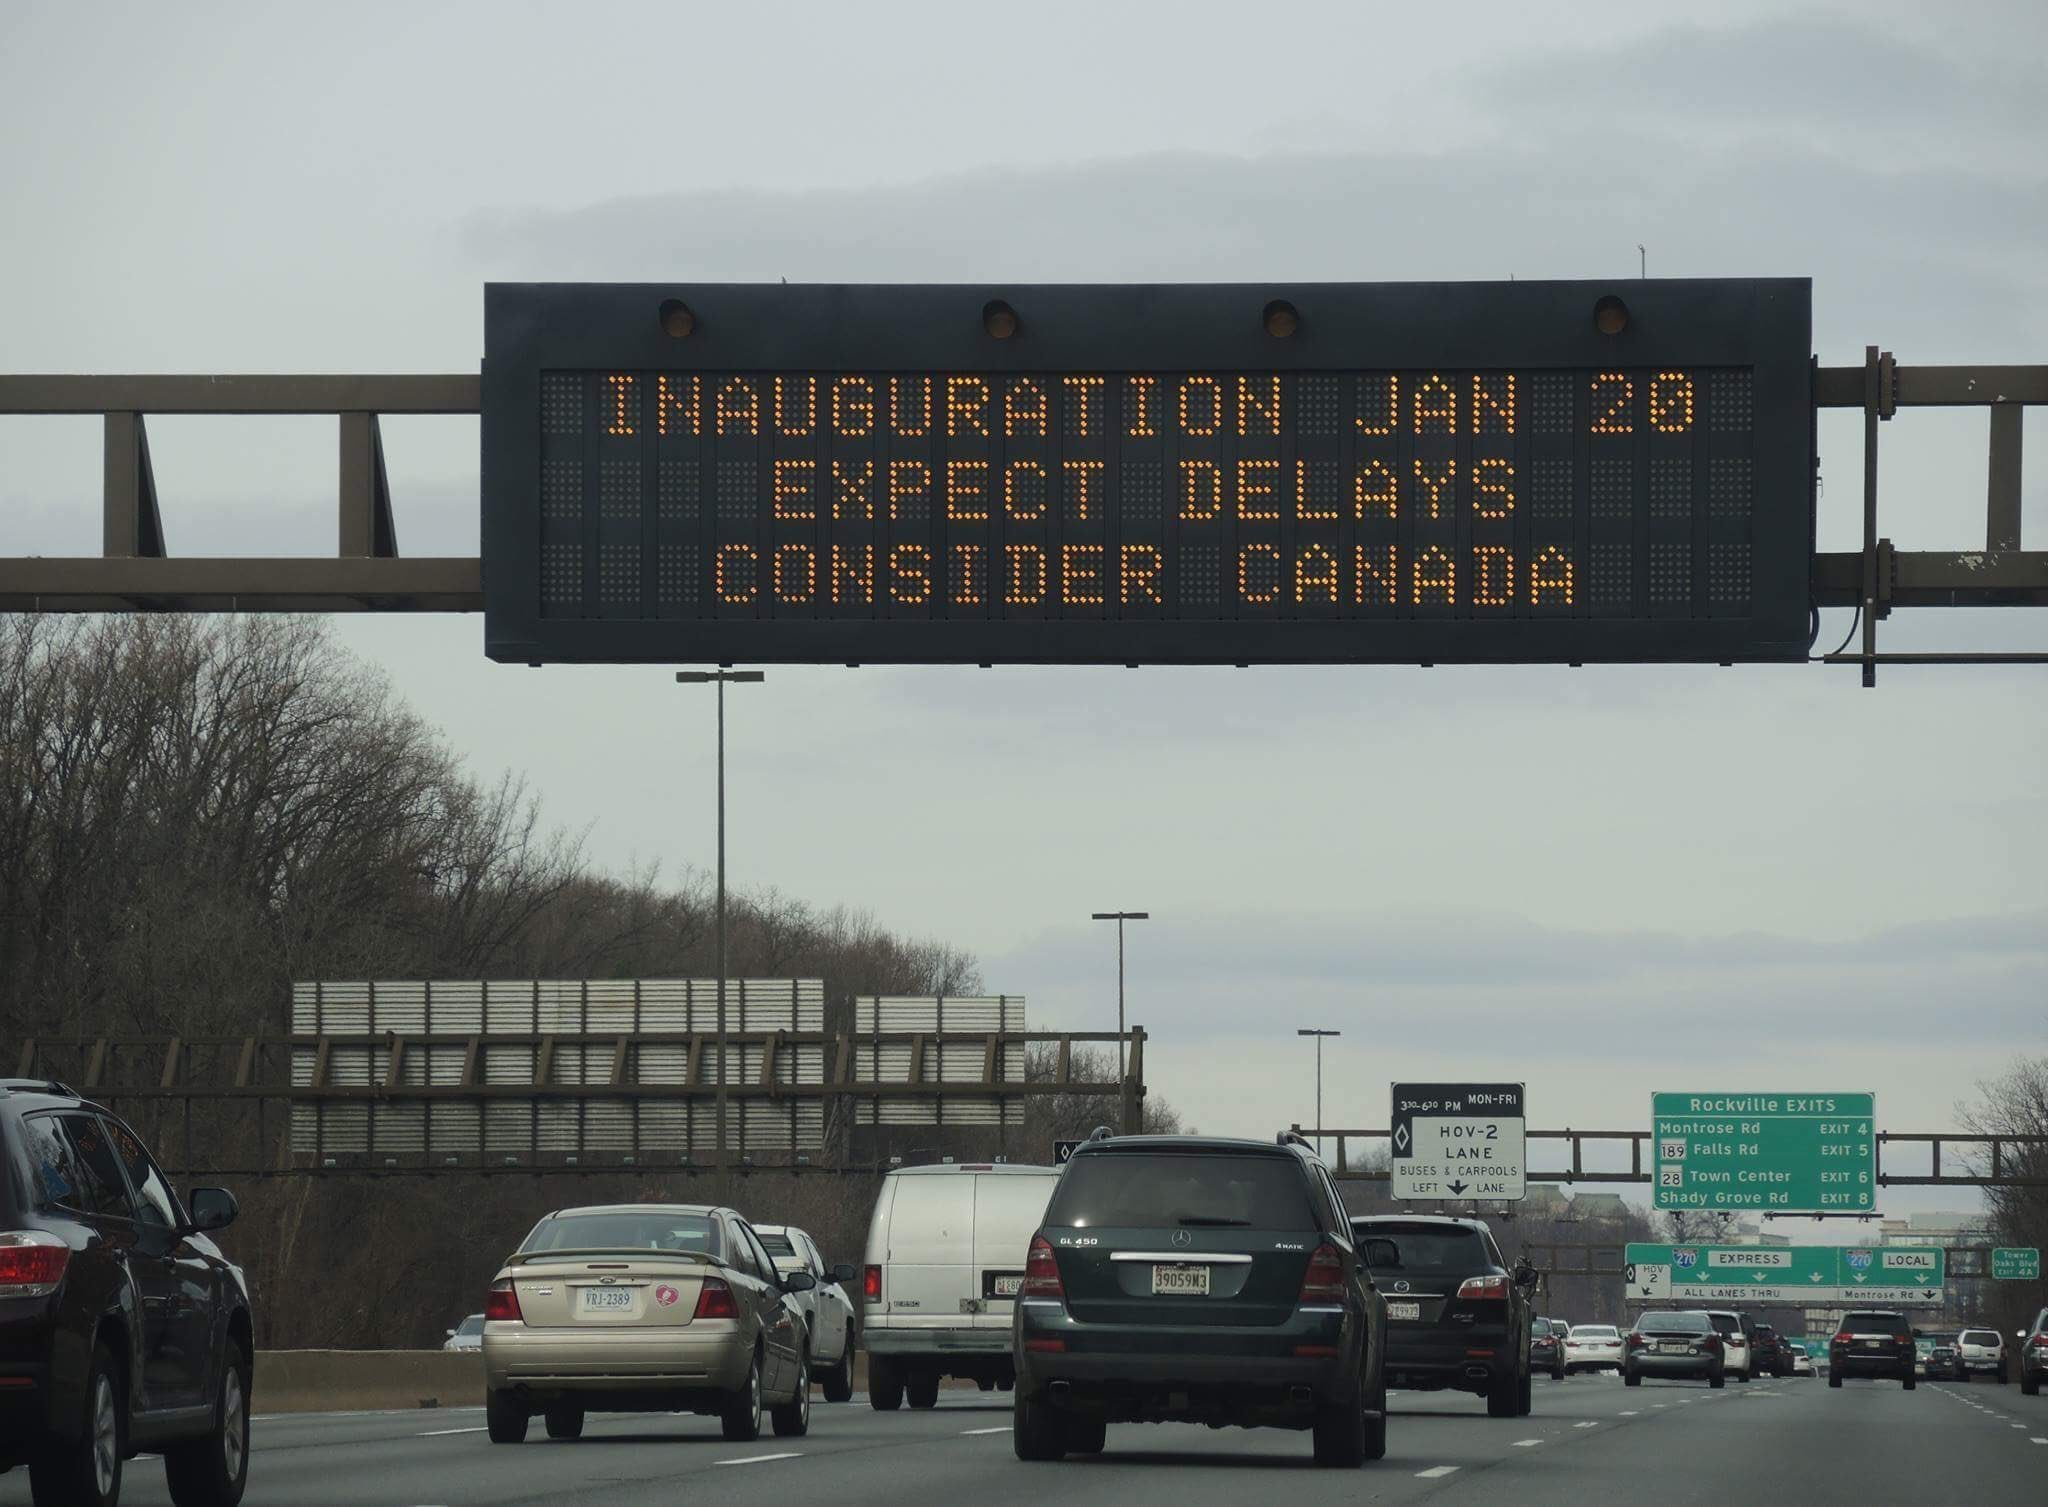 Inaugurations Jan 20 Expect Delays, Consider Canada